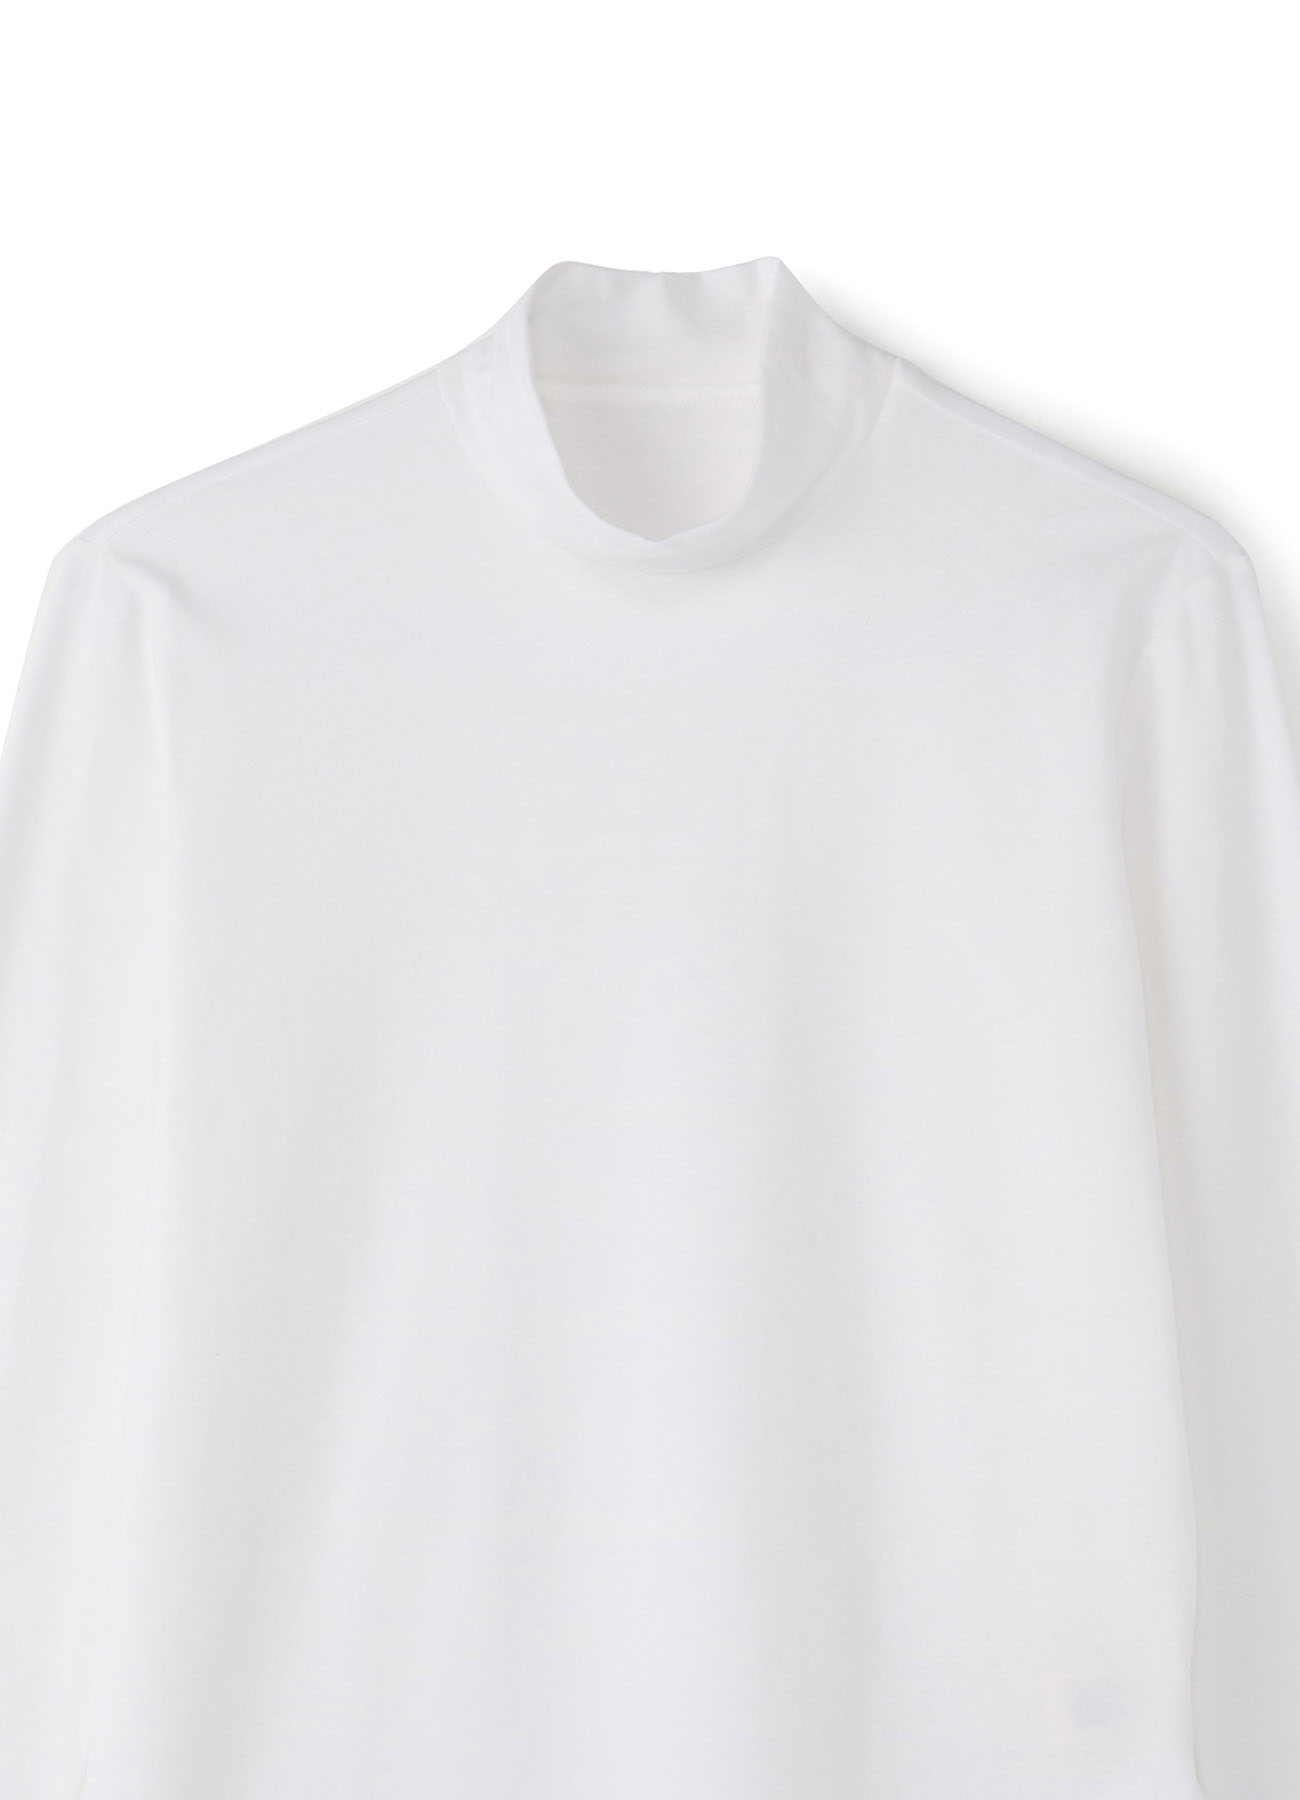 C/Pu High twisted Bare Jersey High Neck T